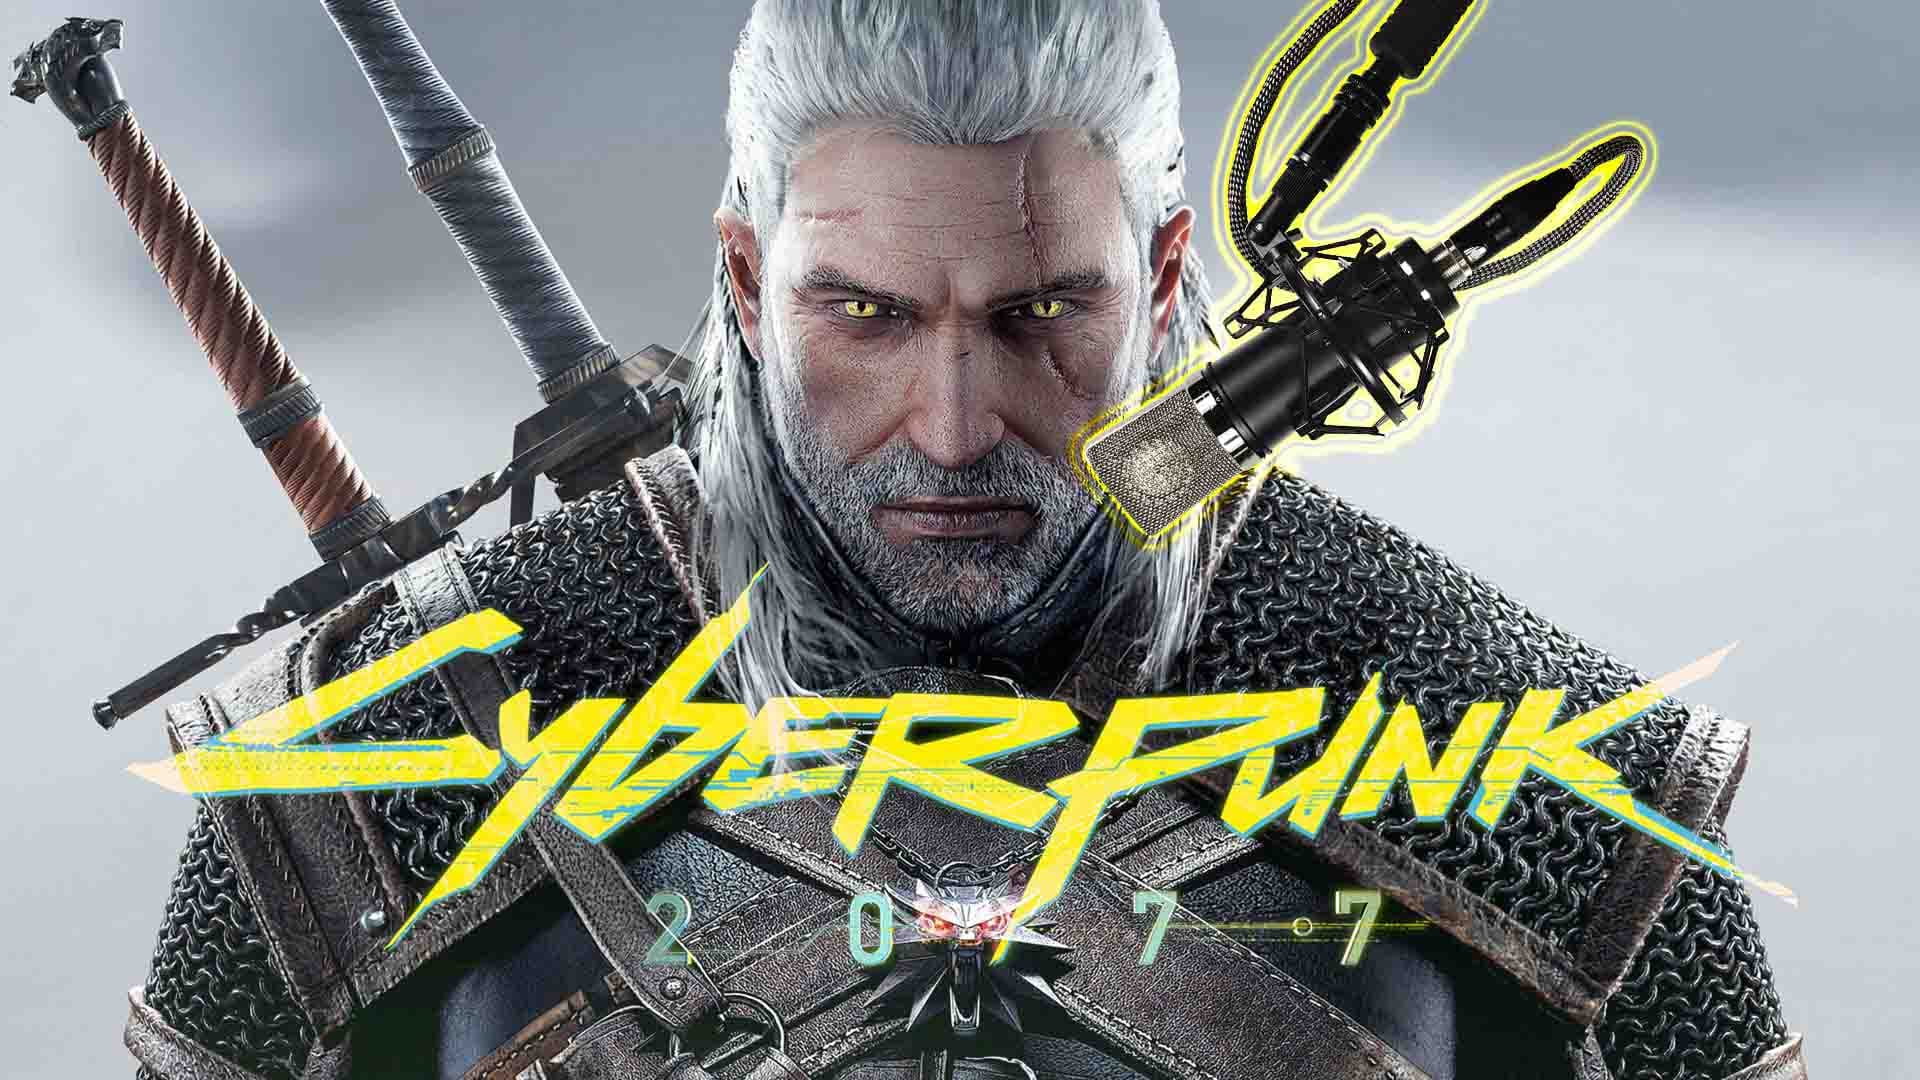 the-witcher-3-wild-hunt-cyberpunk-2077-cd-projekt-red-playstation-ps4-xbox-one-pc-steam-gog-doug-cockle